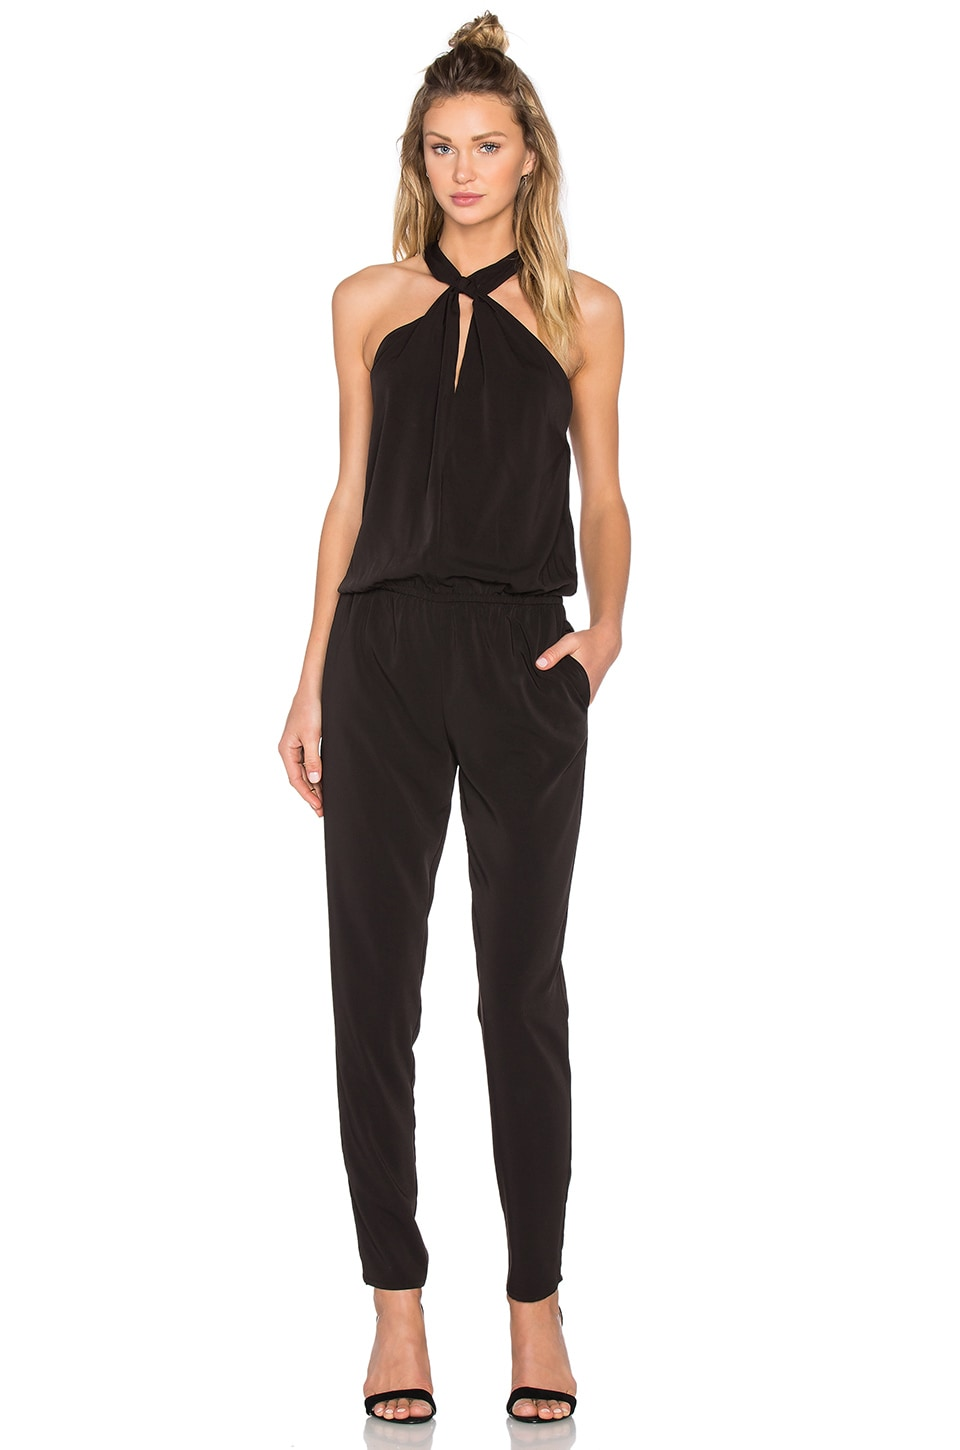 Bobi BLACK Front Keyhole Sleeveless Jumpsuit in Black